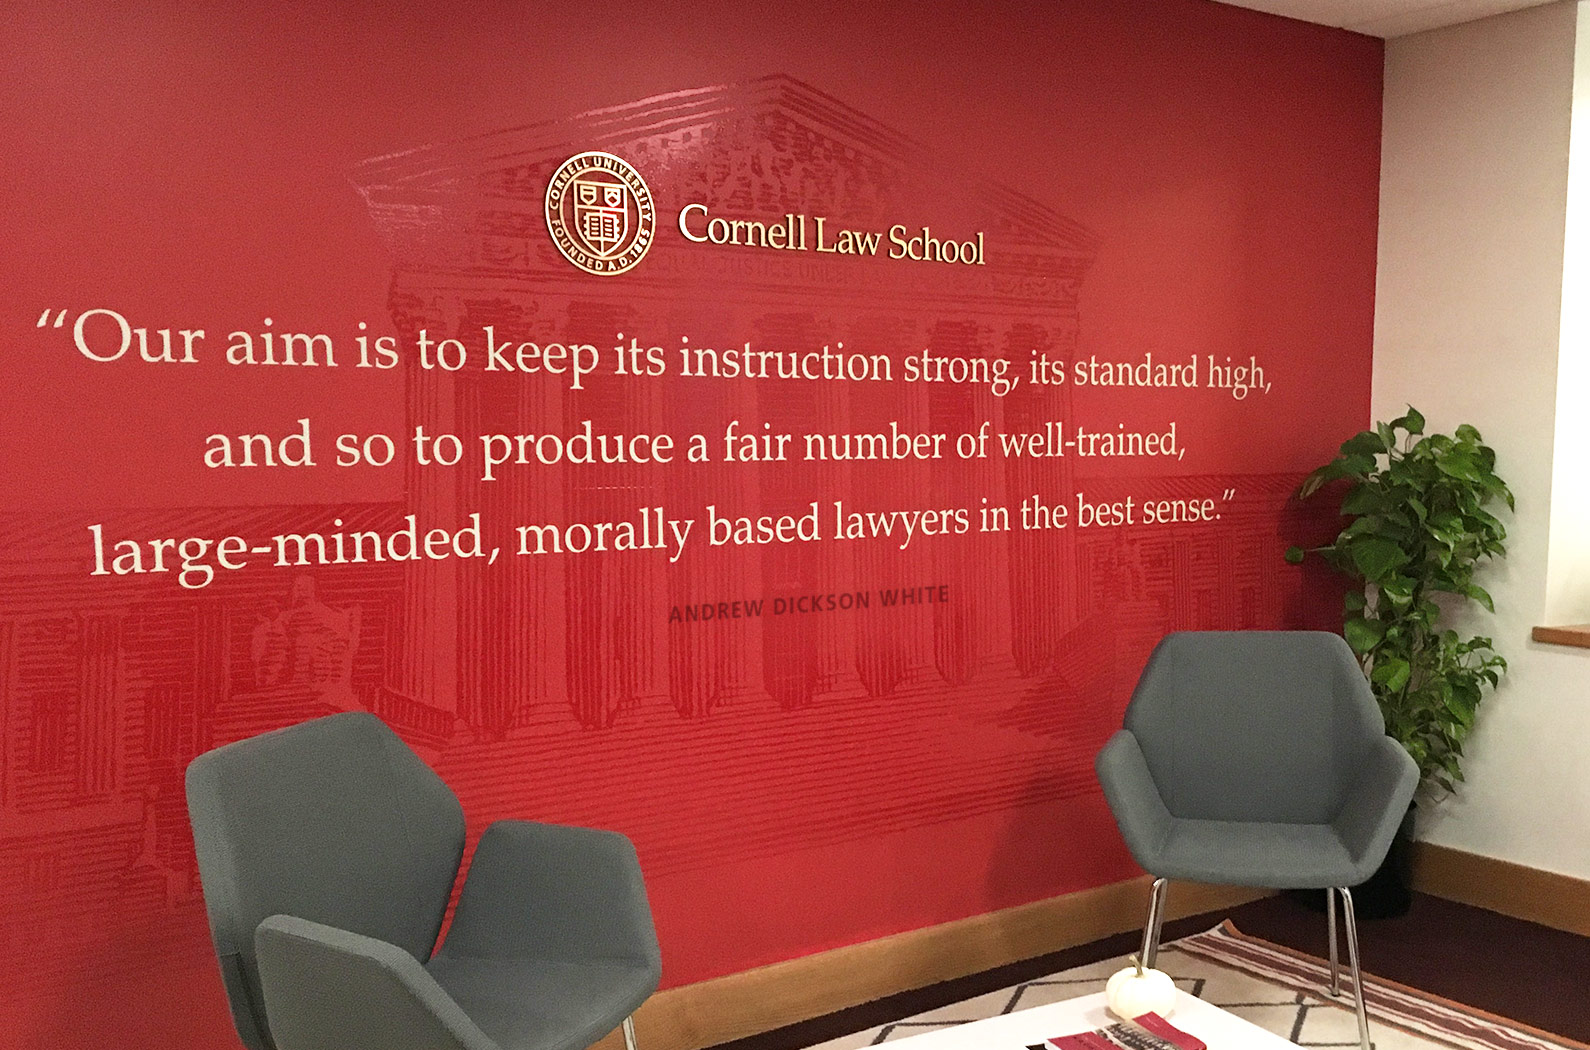 Cornell Law School Admissions Office Wall Signage